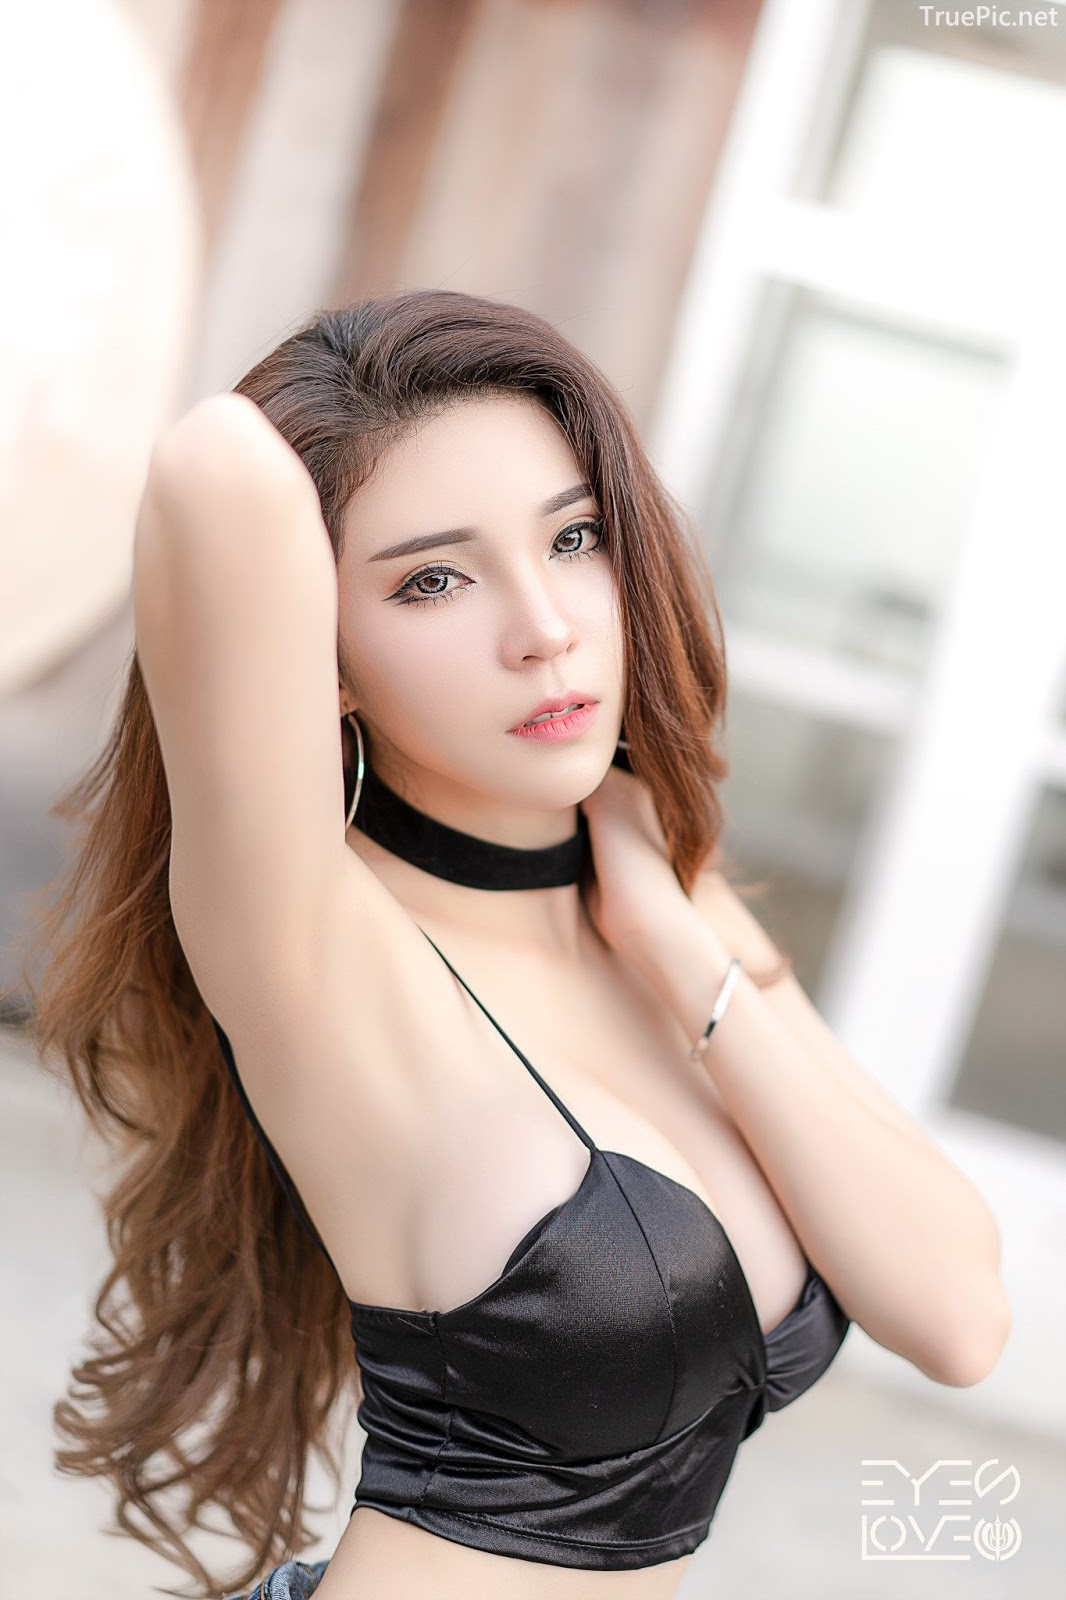 Thailand hot model - Janet Kanokwan Saesim - Black leather and jean - Picture 8